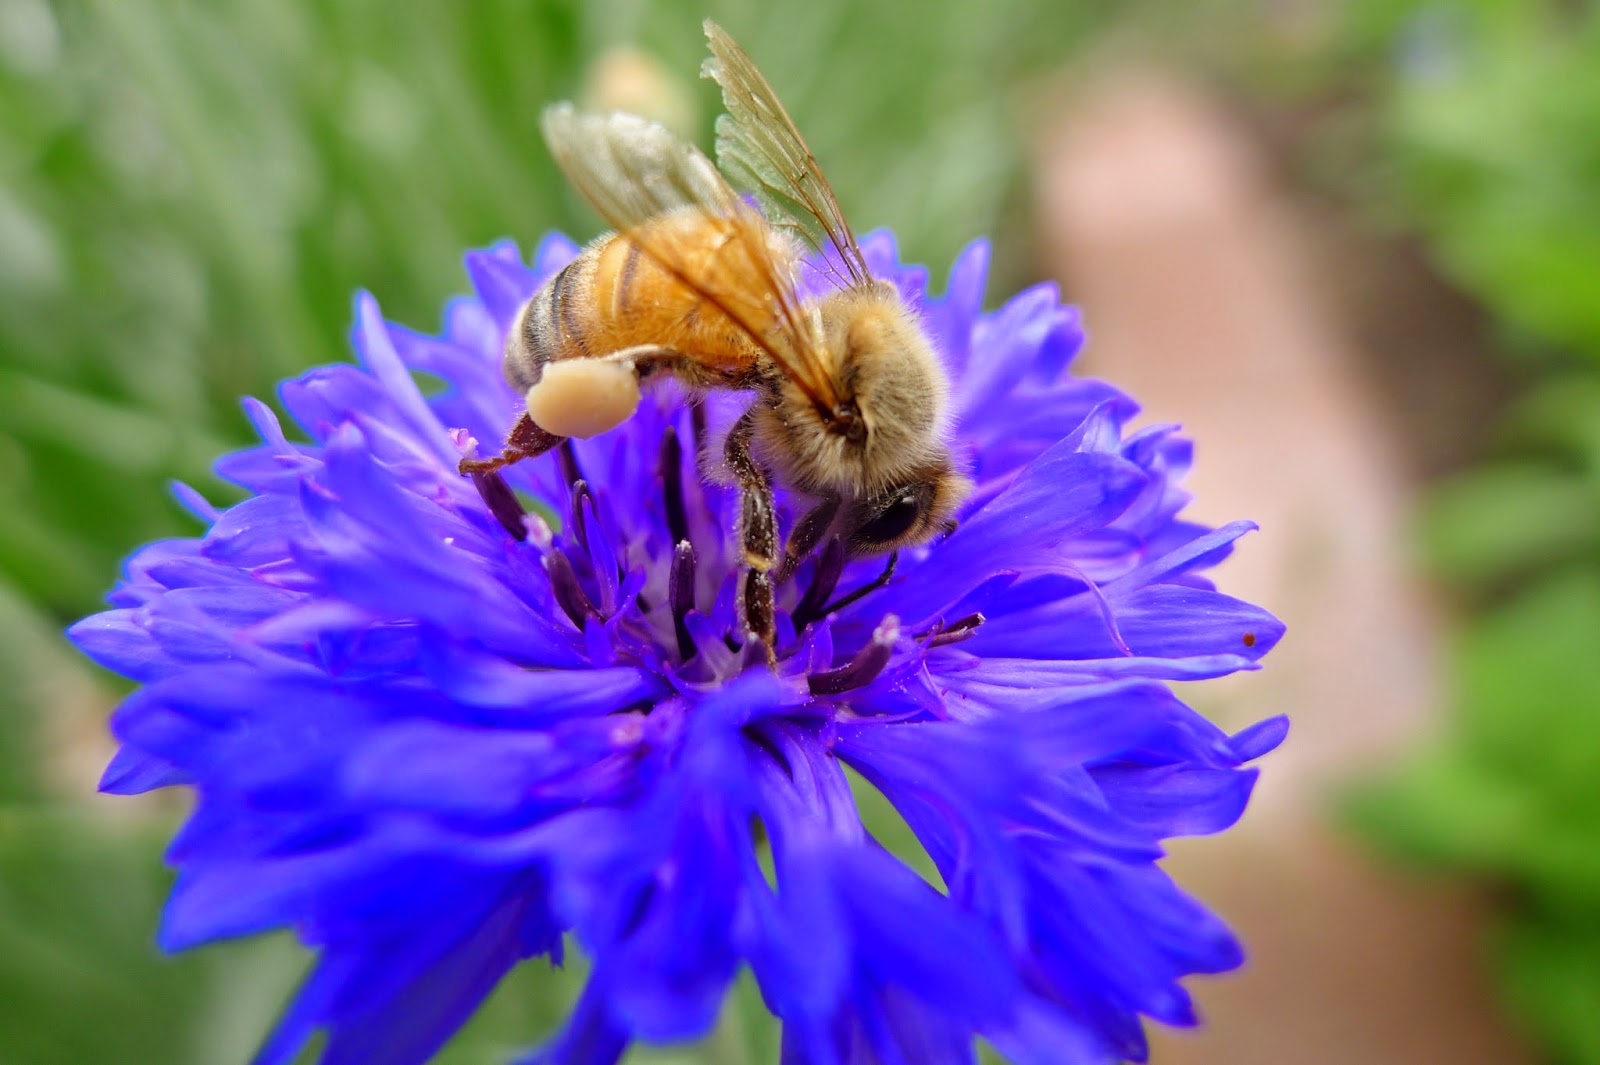 Honey Bee on Batchelor's Button, pollinators,urban farming